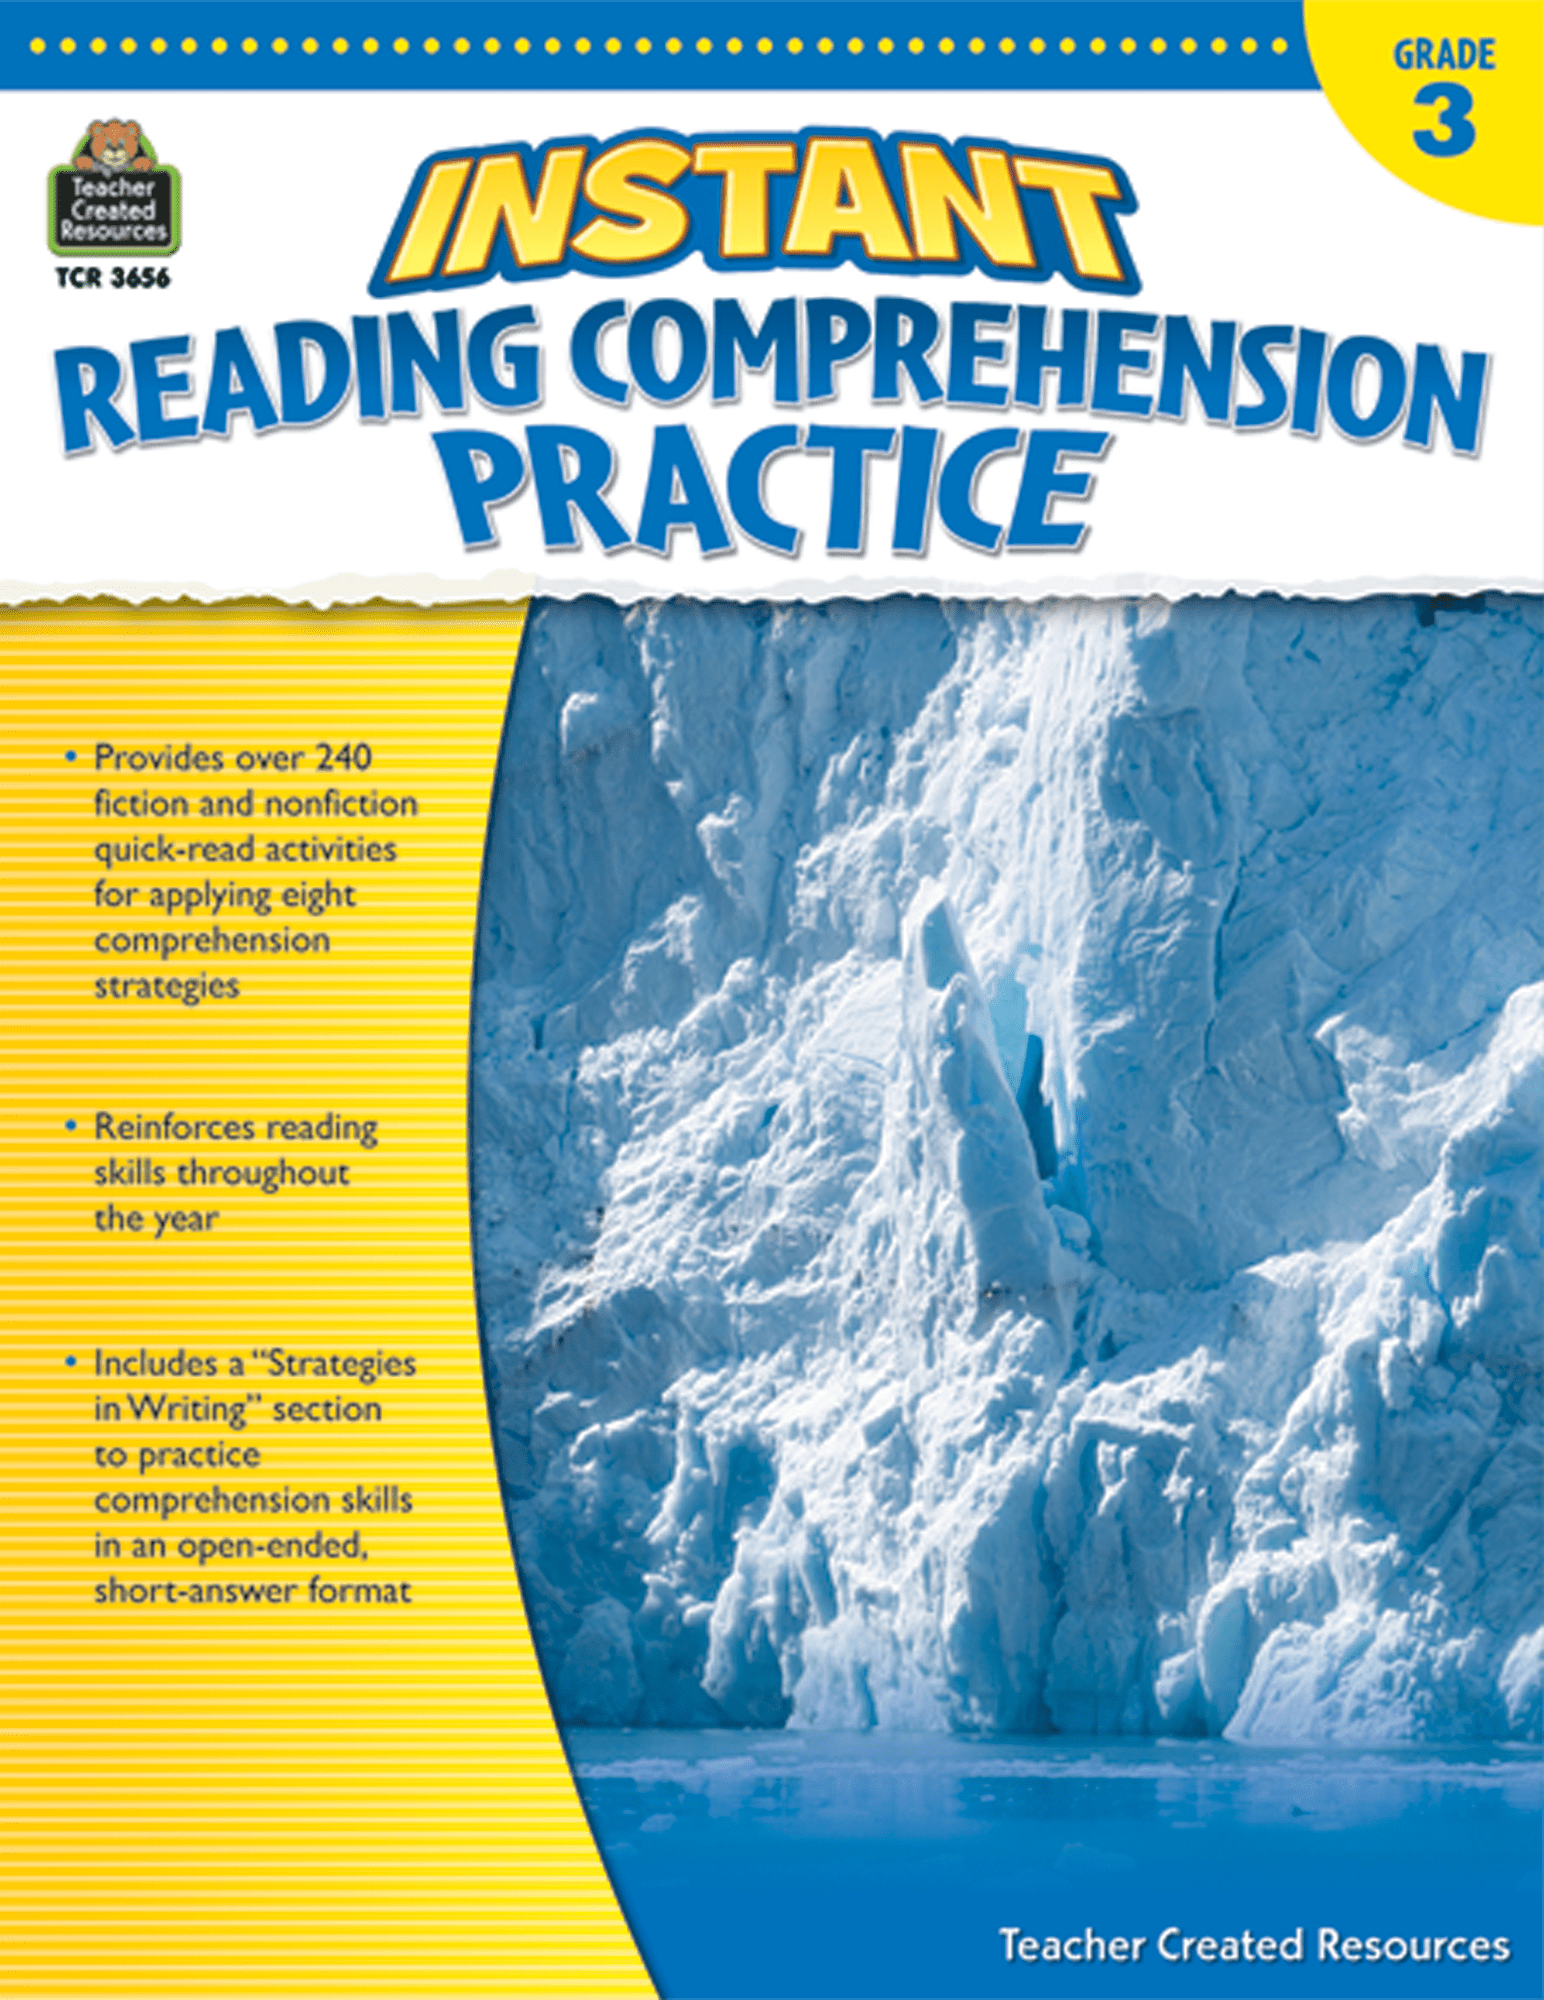 Instant Reading Comprehension Practice Grade 3